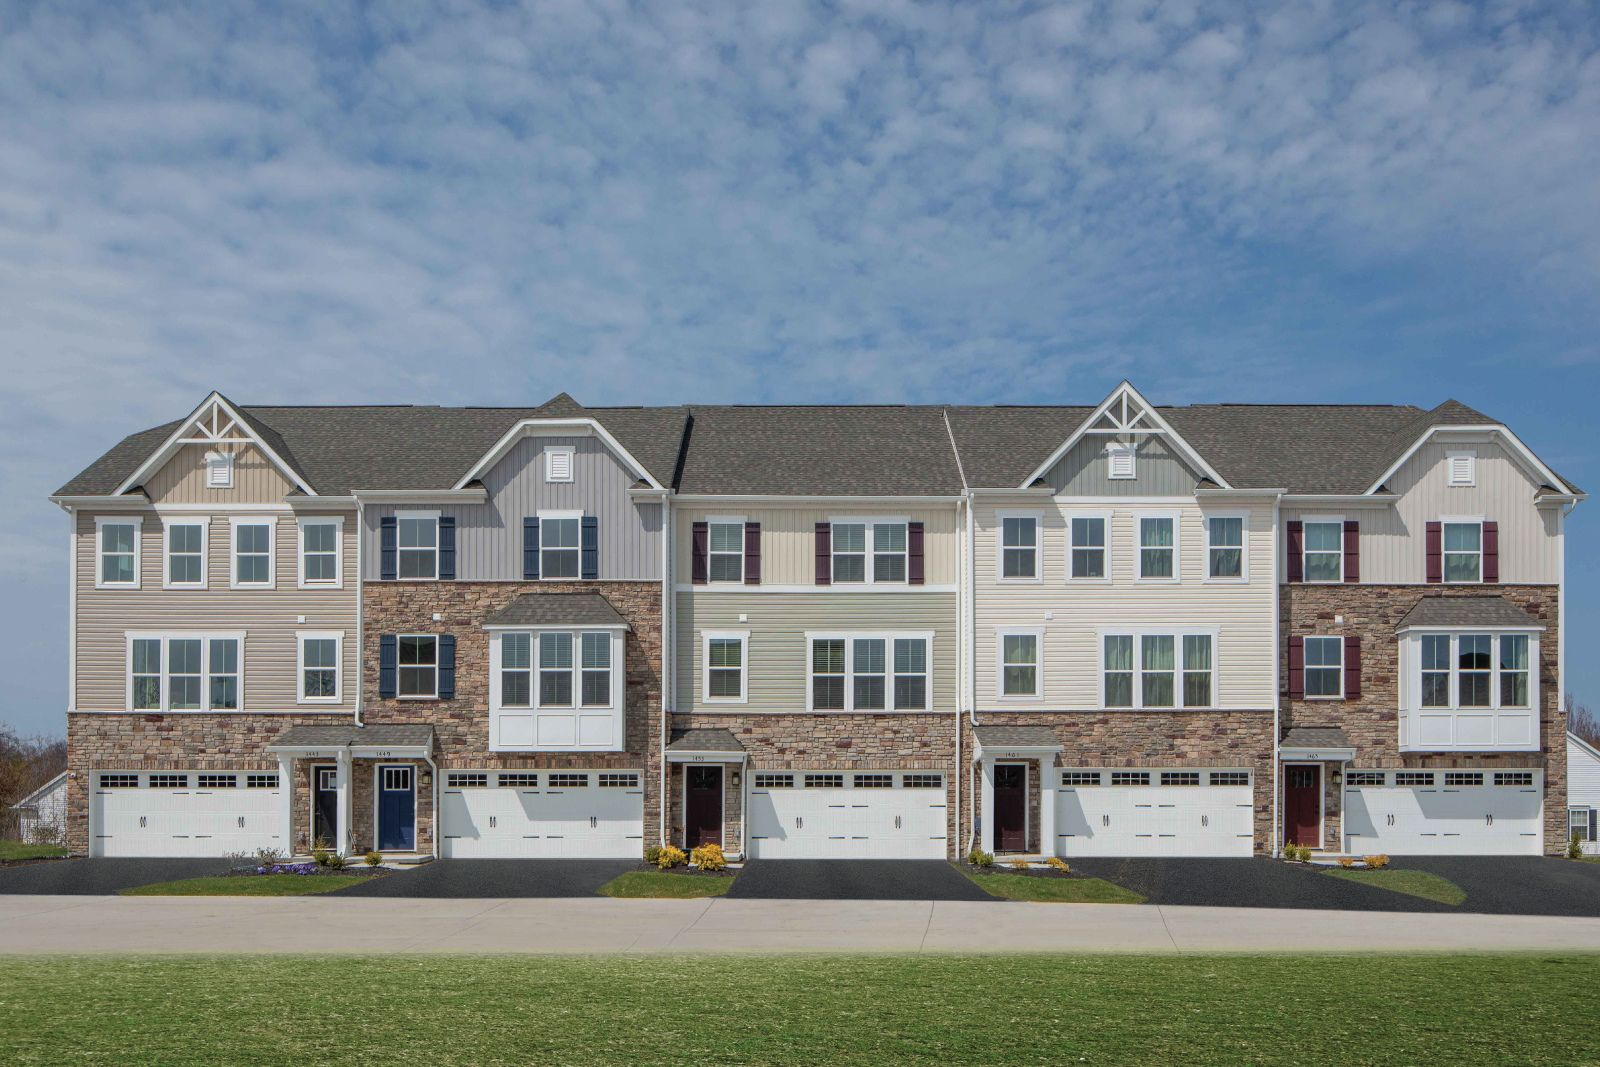 Welcome to Greenwood Village:The best location for new townhomes in Canonsburg with the quickest access to I-79, Rt. 19, & Southpointe. Lawn maintenance included. From mid $200s.Click here to join the VIP List!